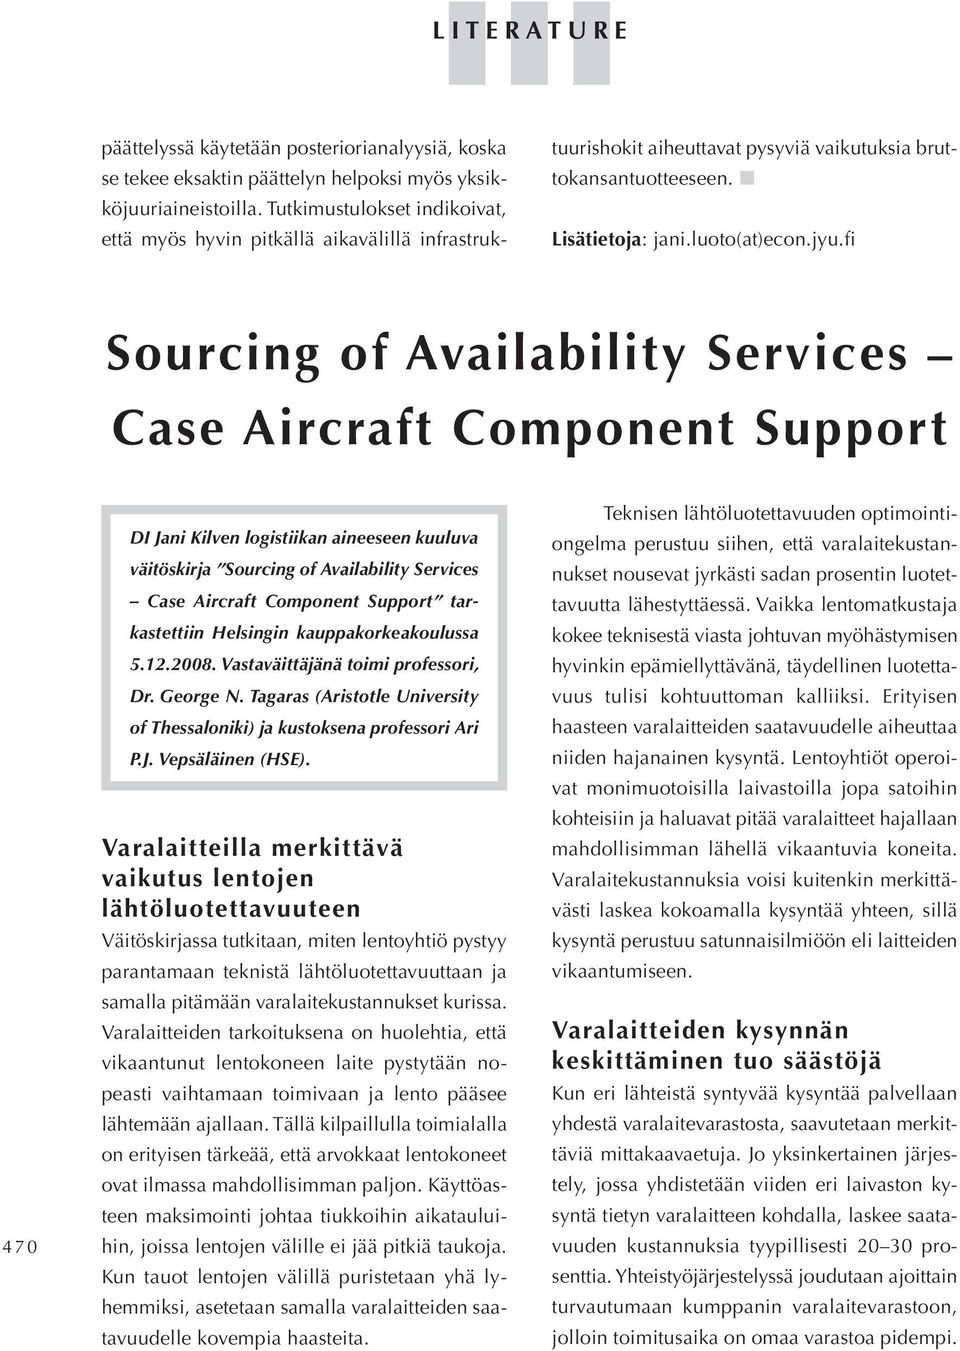 fi Sourcing of Availability Services Case Aircraft Component Support 4 7 0 DI Jani Kilven logistiikan aineeseen kuuluva väitöskirja Sourcing of Availability Services Case Aircraft Component Support